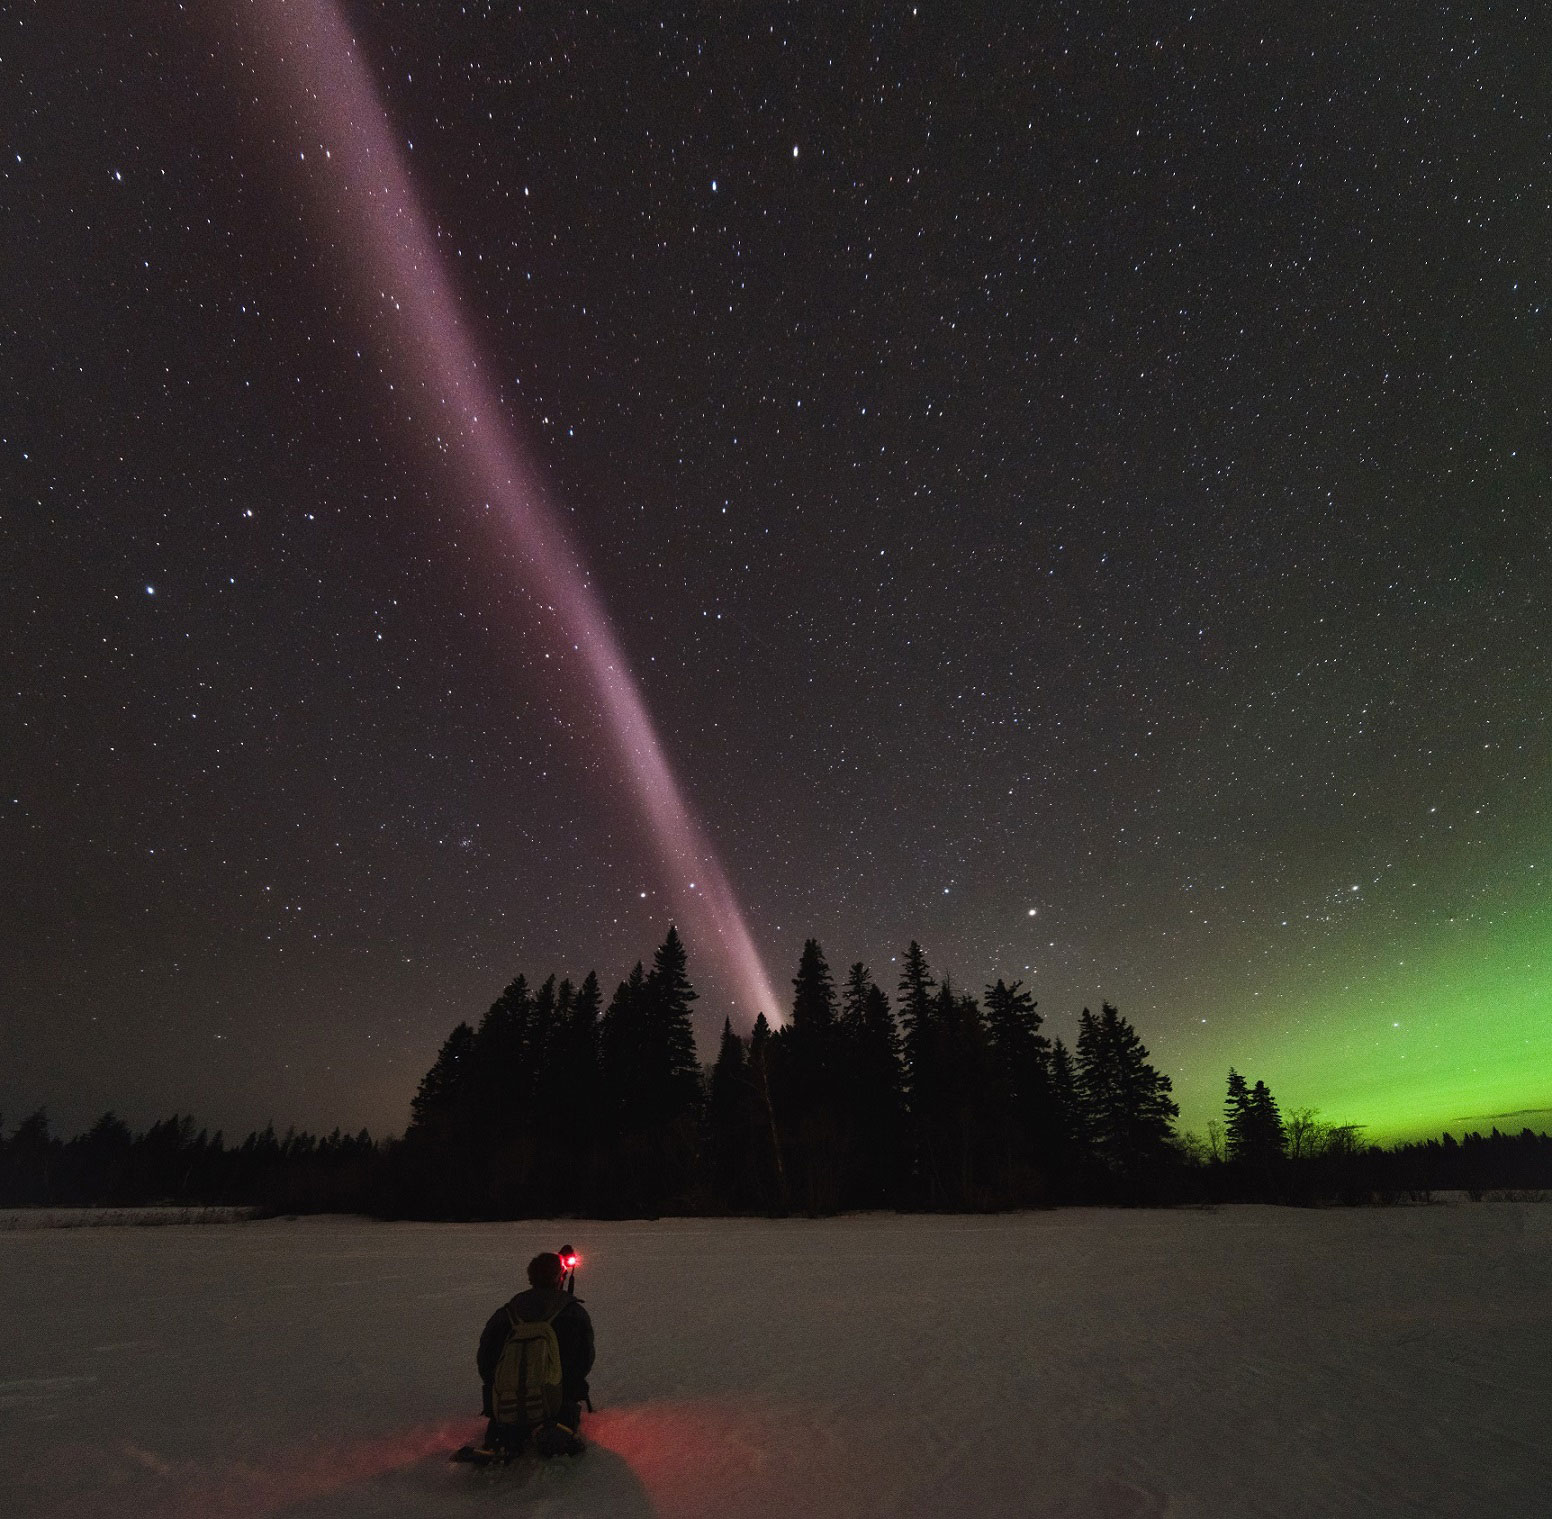 Steve The Weird 'Aurora' Is Not What We Thought It Was